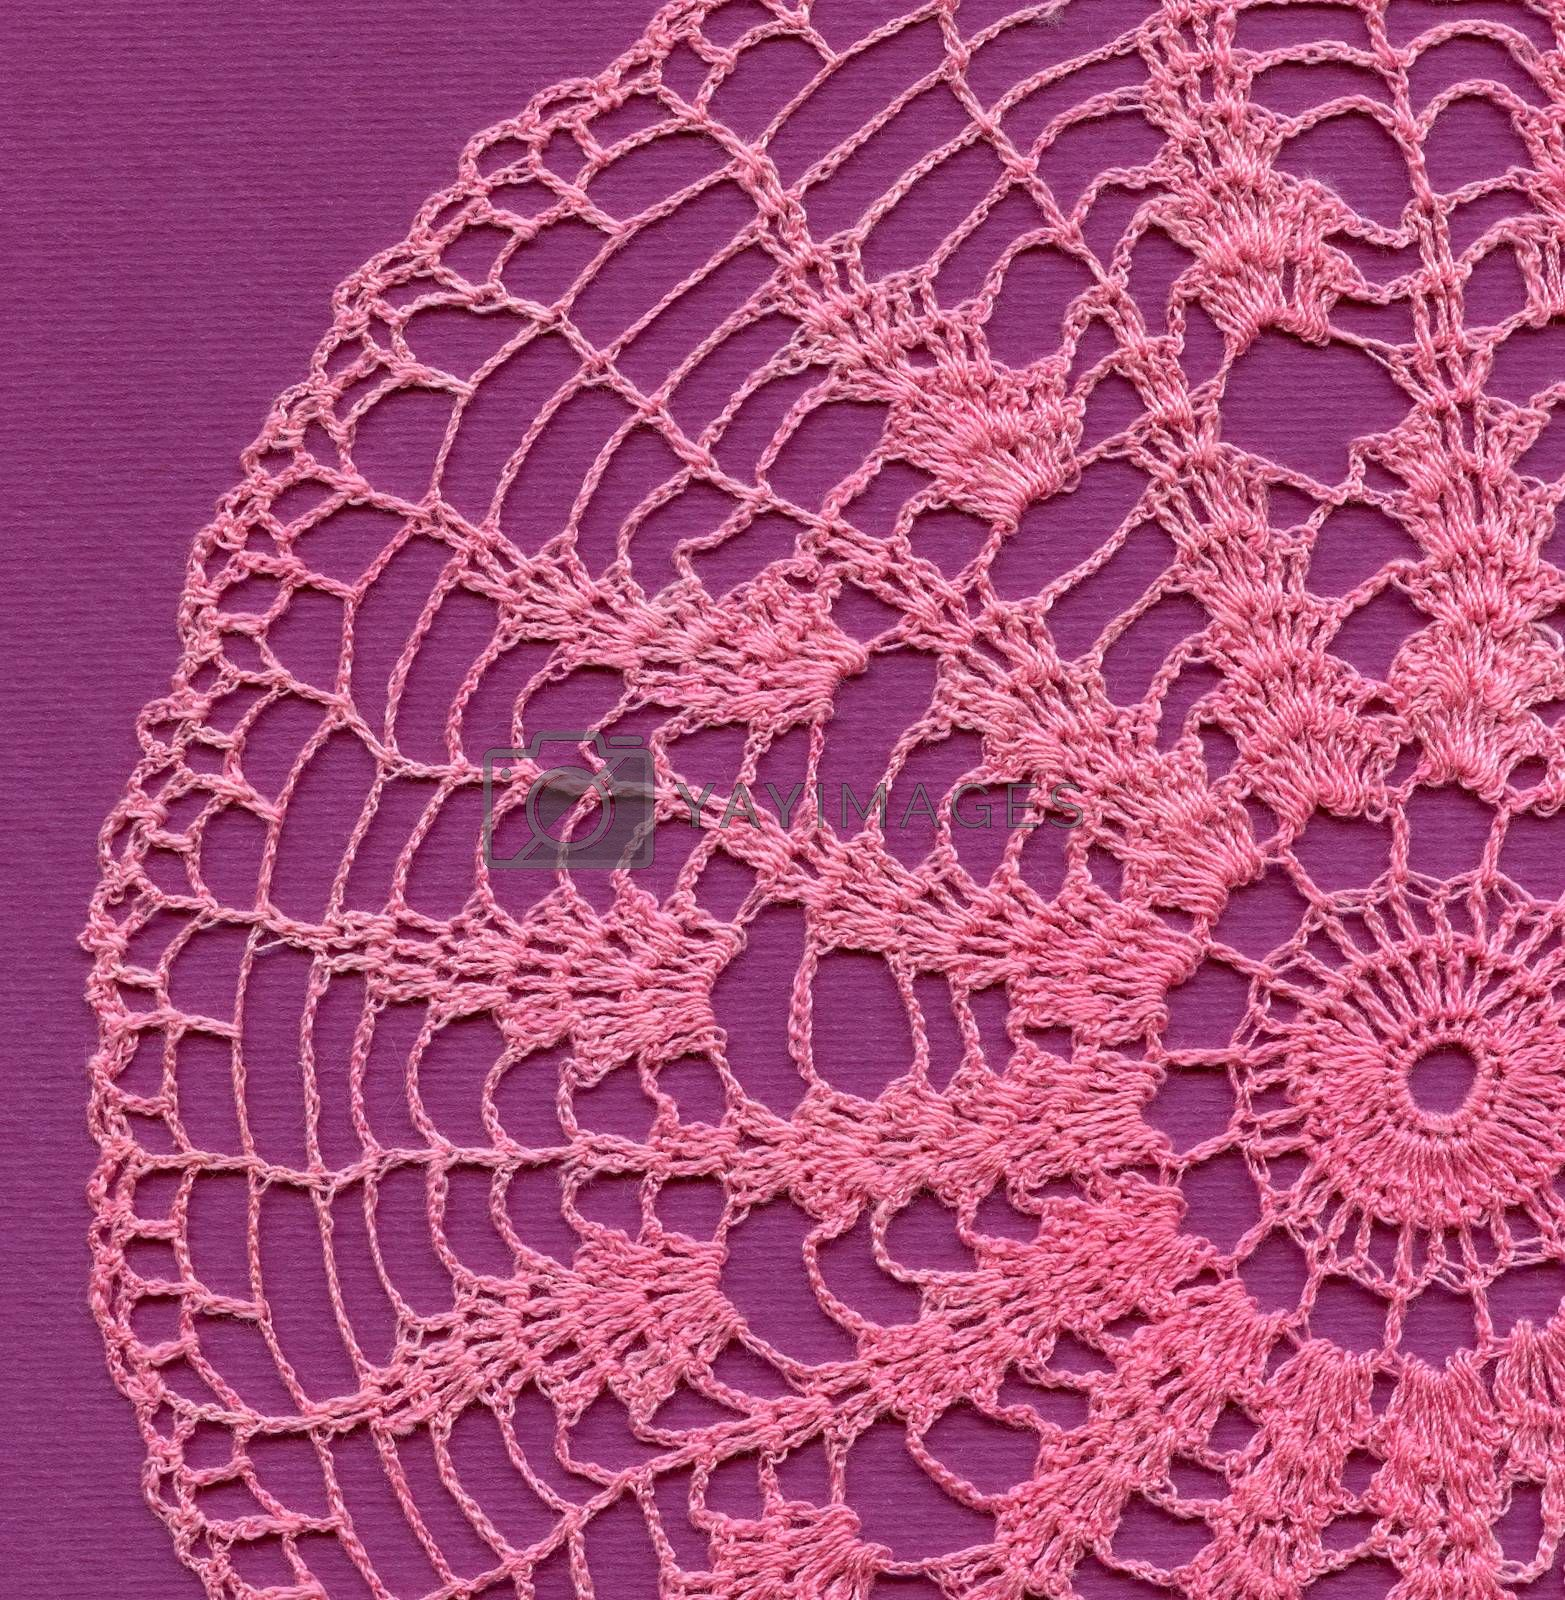 Crochet handmade lace. Abstract Light Color Background.